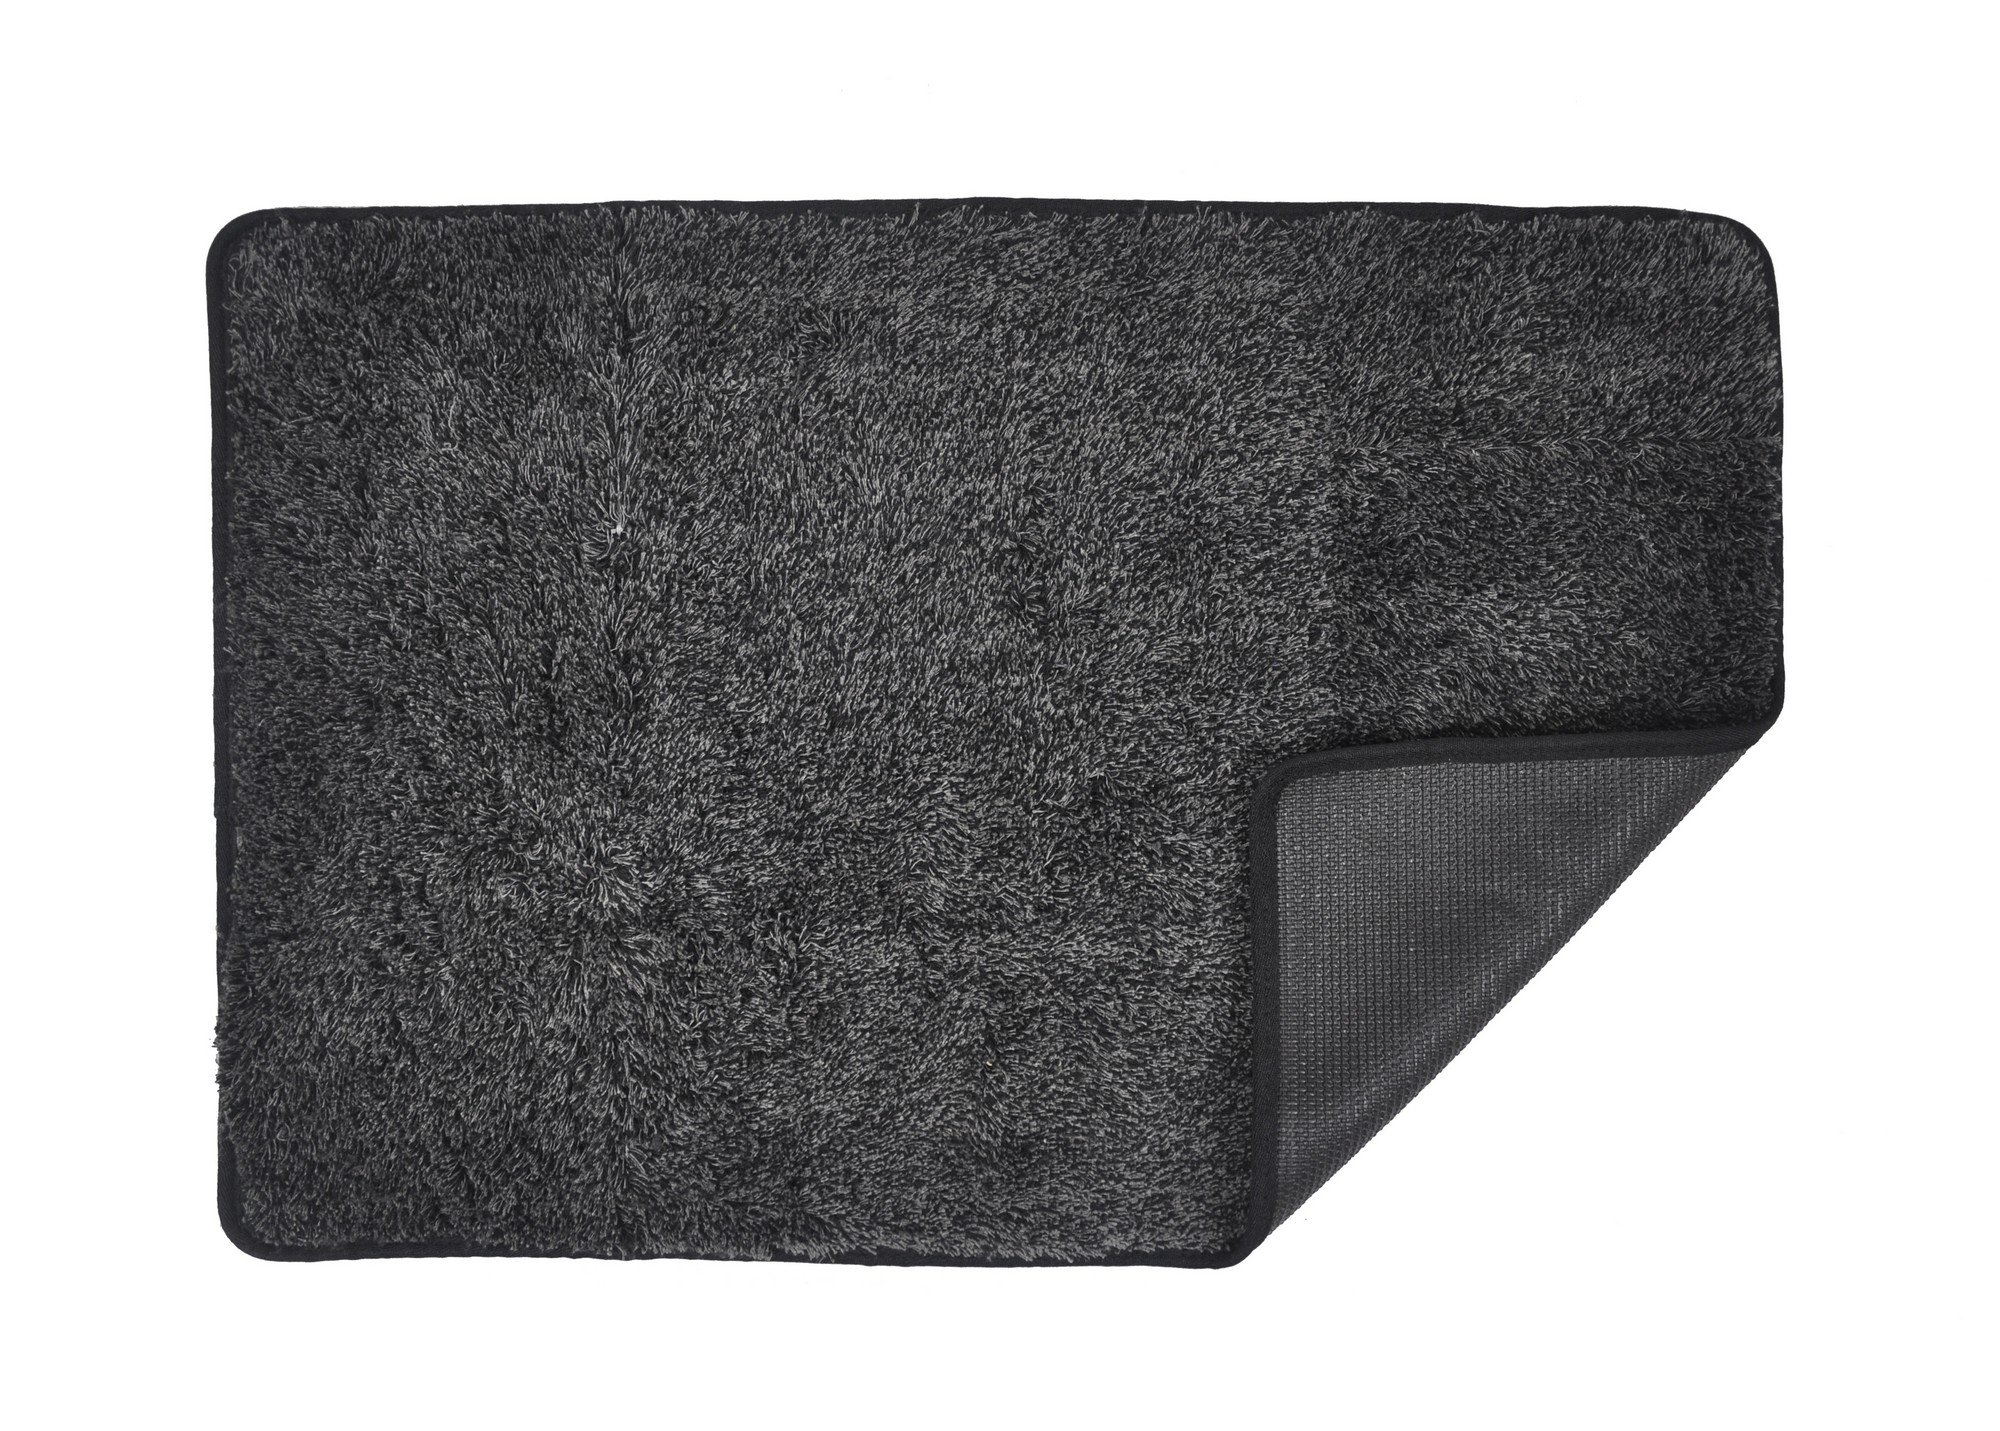 Eurow Trek N' Clean Super Absorbent Floor Mat (23.5in X 36in) Gray/Black